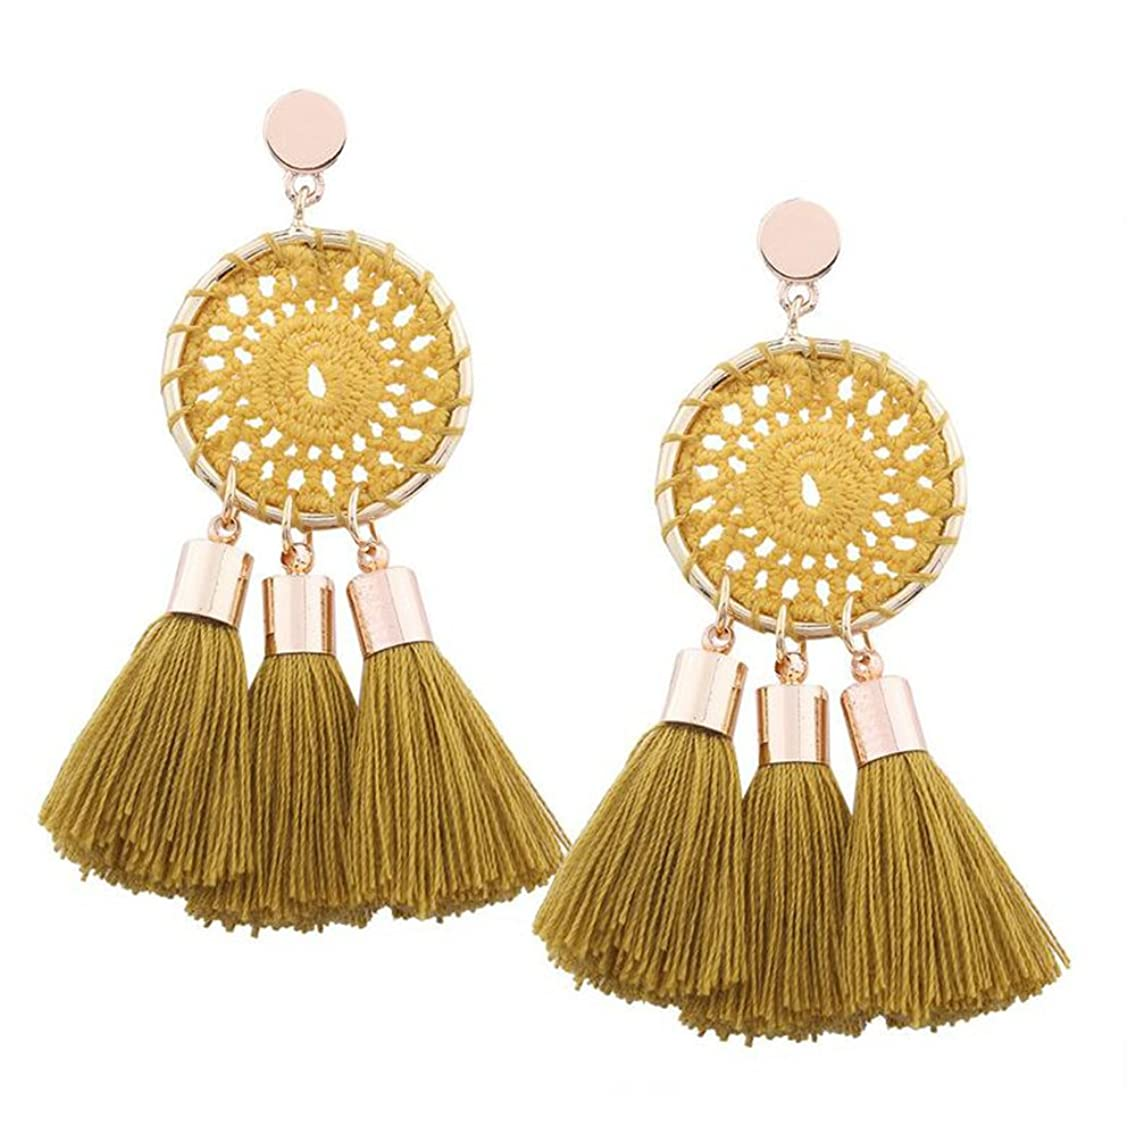 Ethnic Handmade Tassel Earrings Bohemian Earrings For Women Vintage Jewelry Pendant Earrings